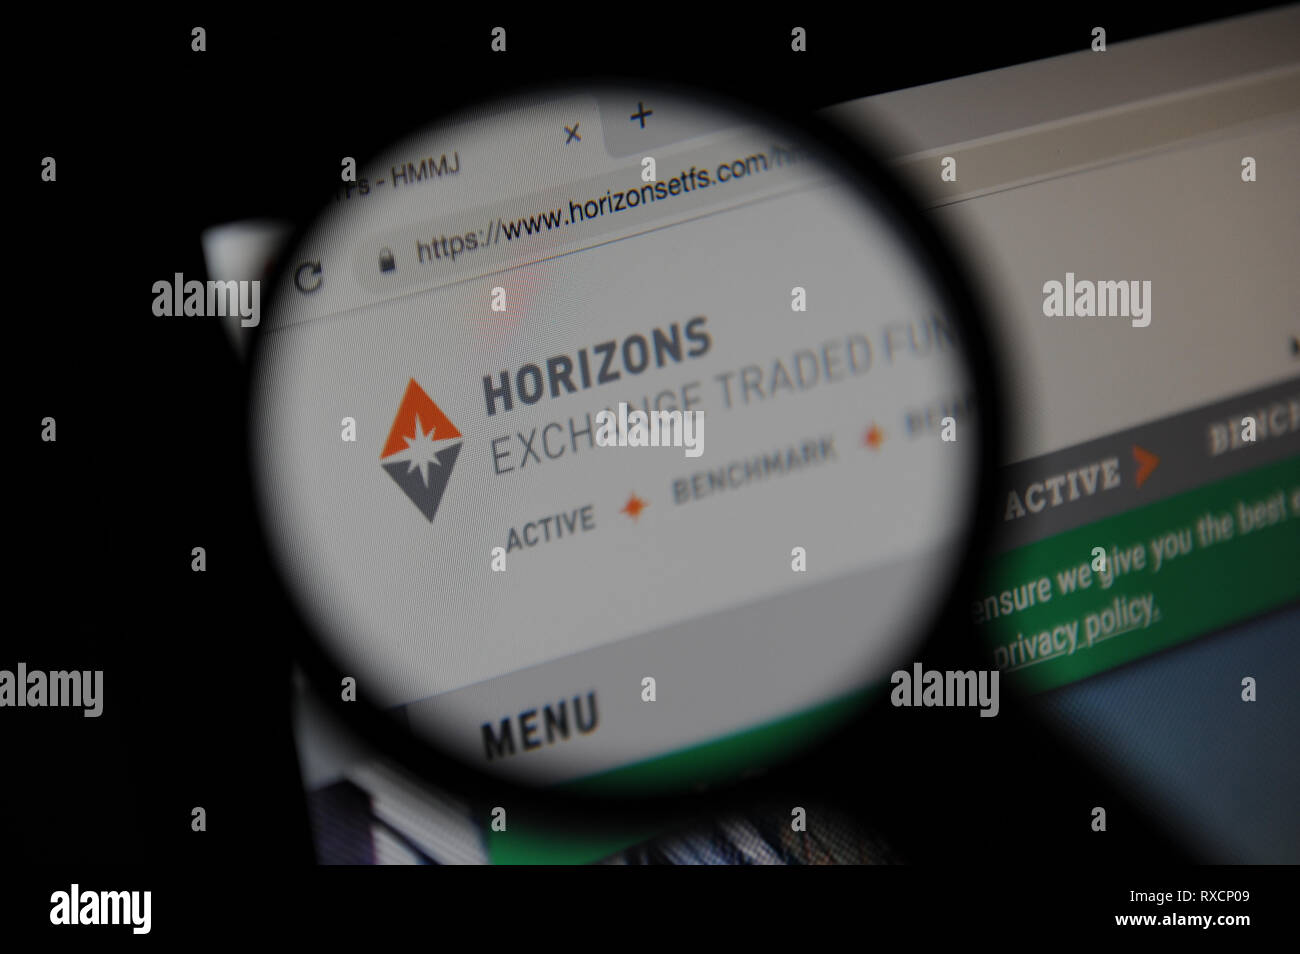 Horizons ETFs,  Horizons Exchange Traded Funds website seen through a magnifying glass - Stock Image